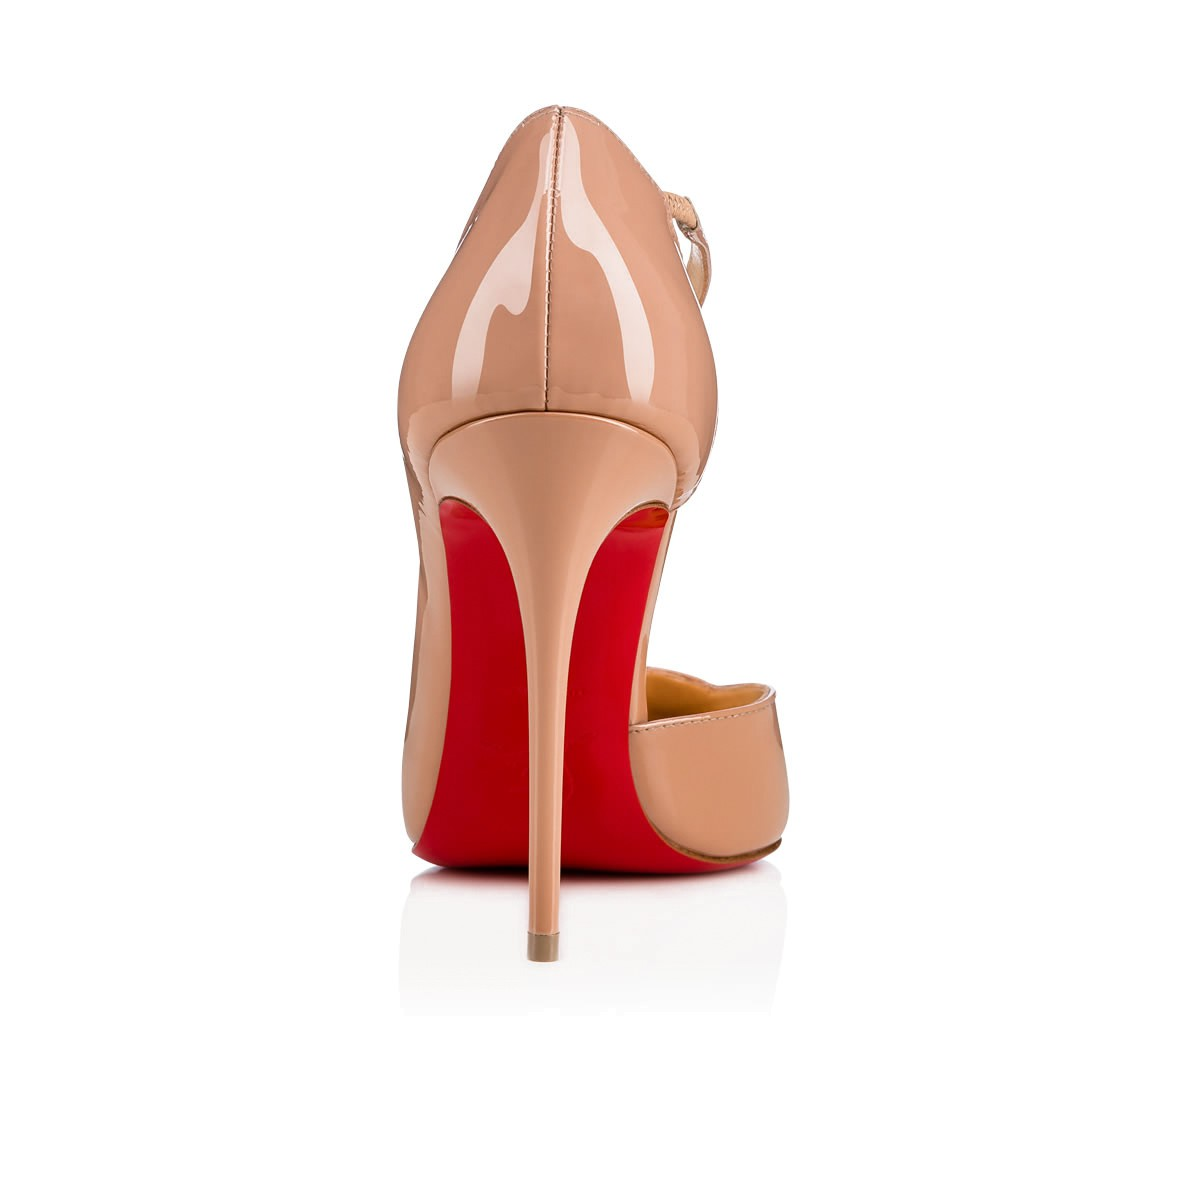 Shoes - Jumping - Christian Louboutin